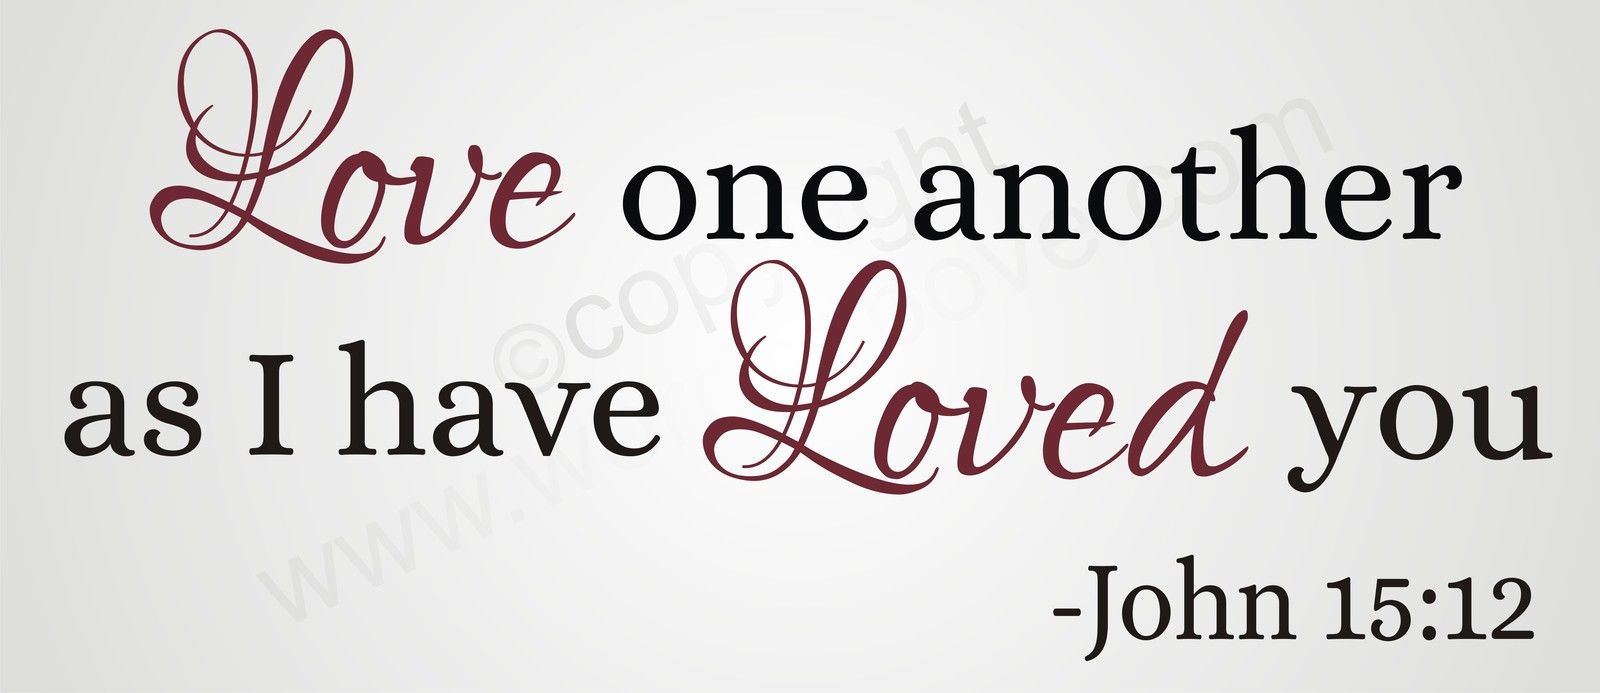 Quotes About Loving One Another. QuotesGram